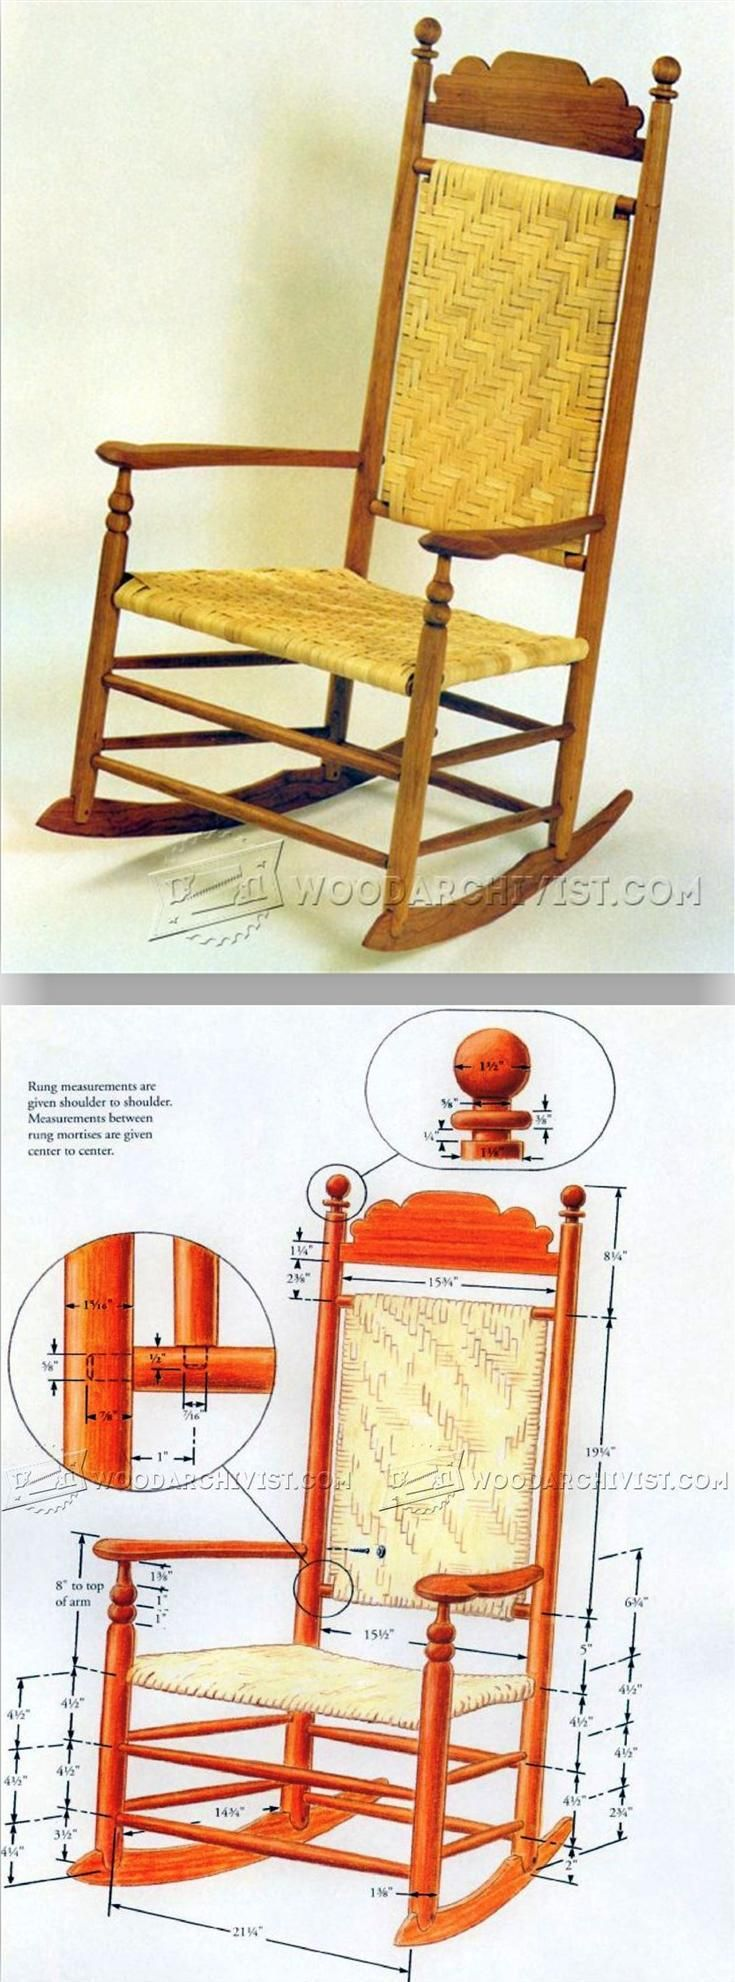 Schaukelstuhl swing insp eames rocking chair rar ahorn - Wood Rocking Chair Plans Furniture Plans And Projects Woodarchivist Com